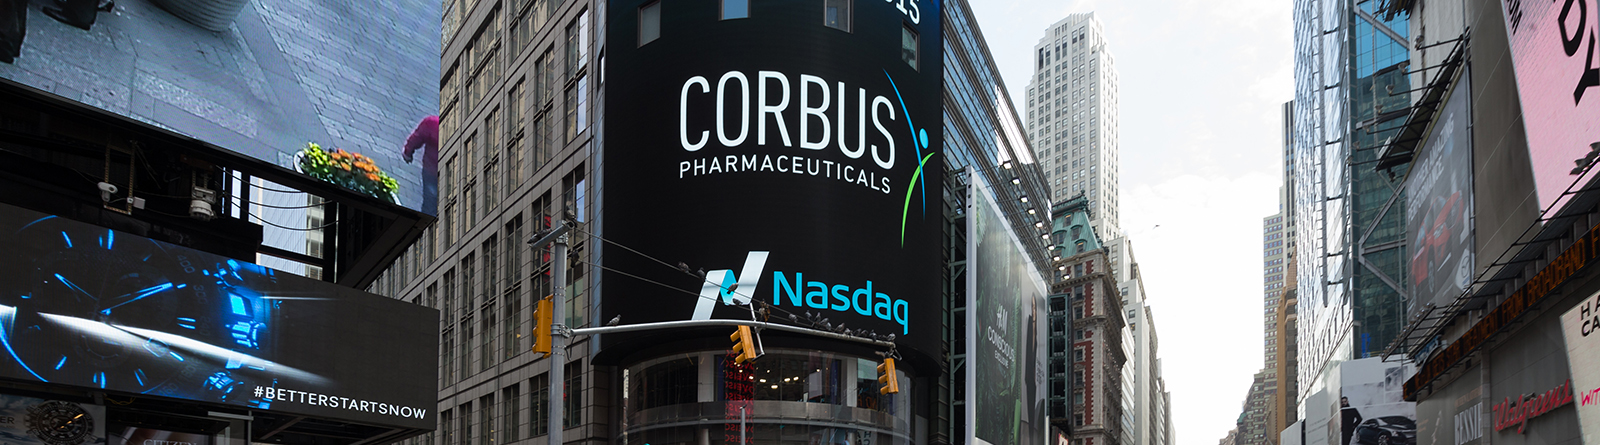 Corbus Pharmaceuticals to Present at Two Upcoming Investor Conferences Banner